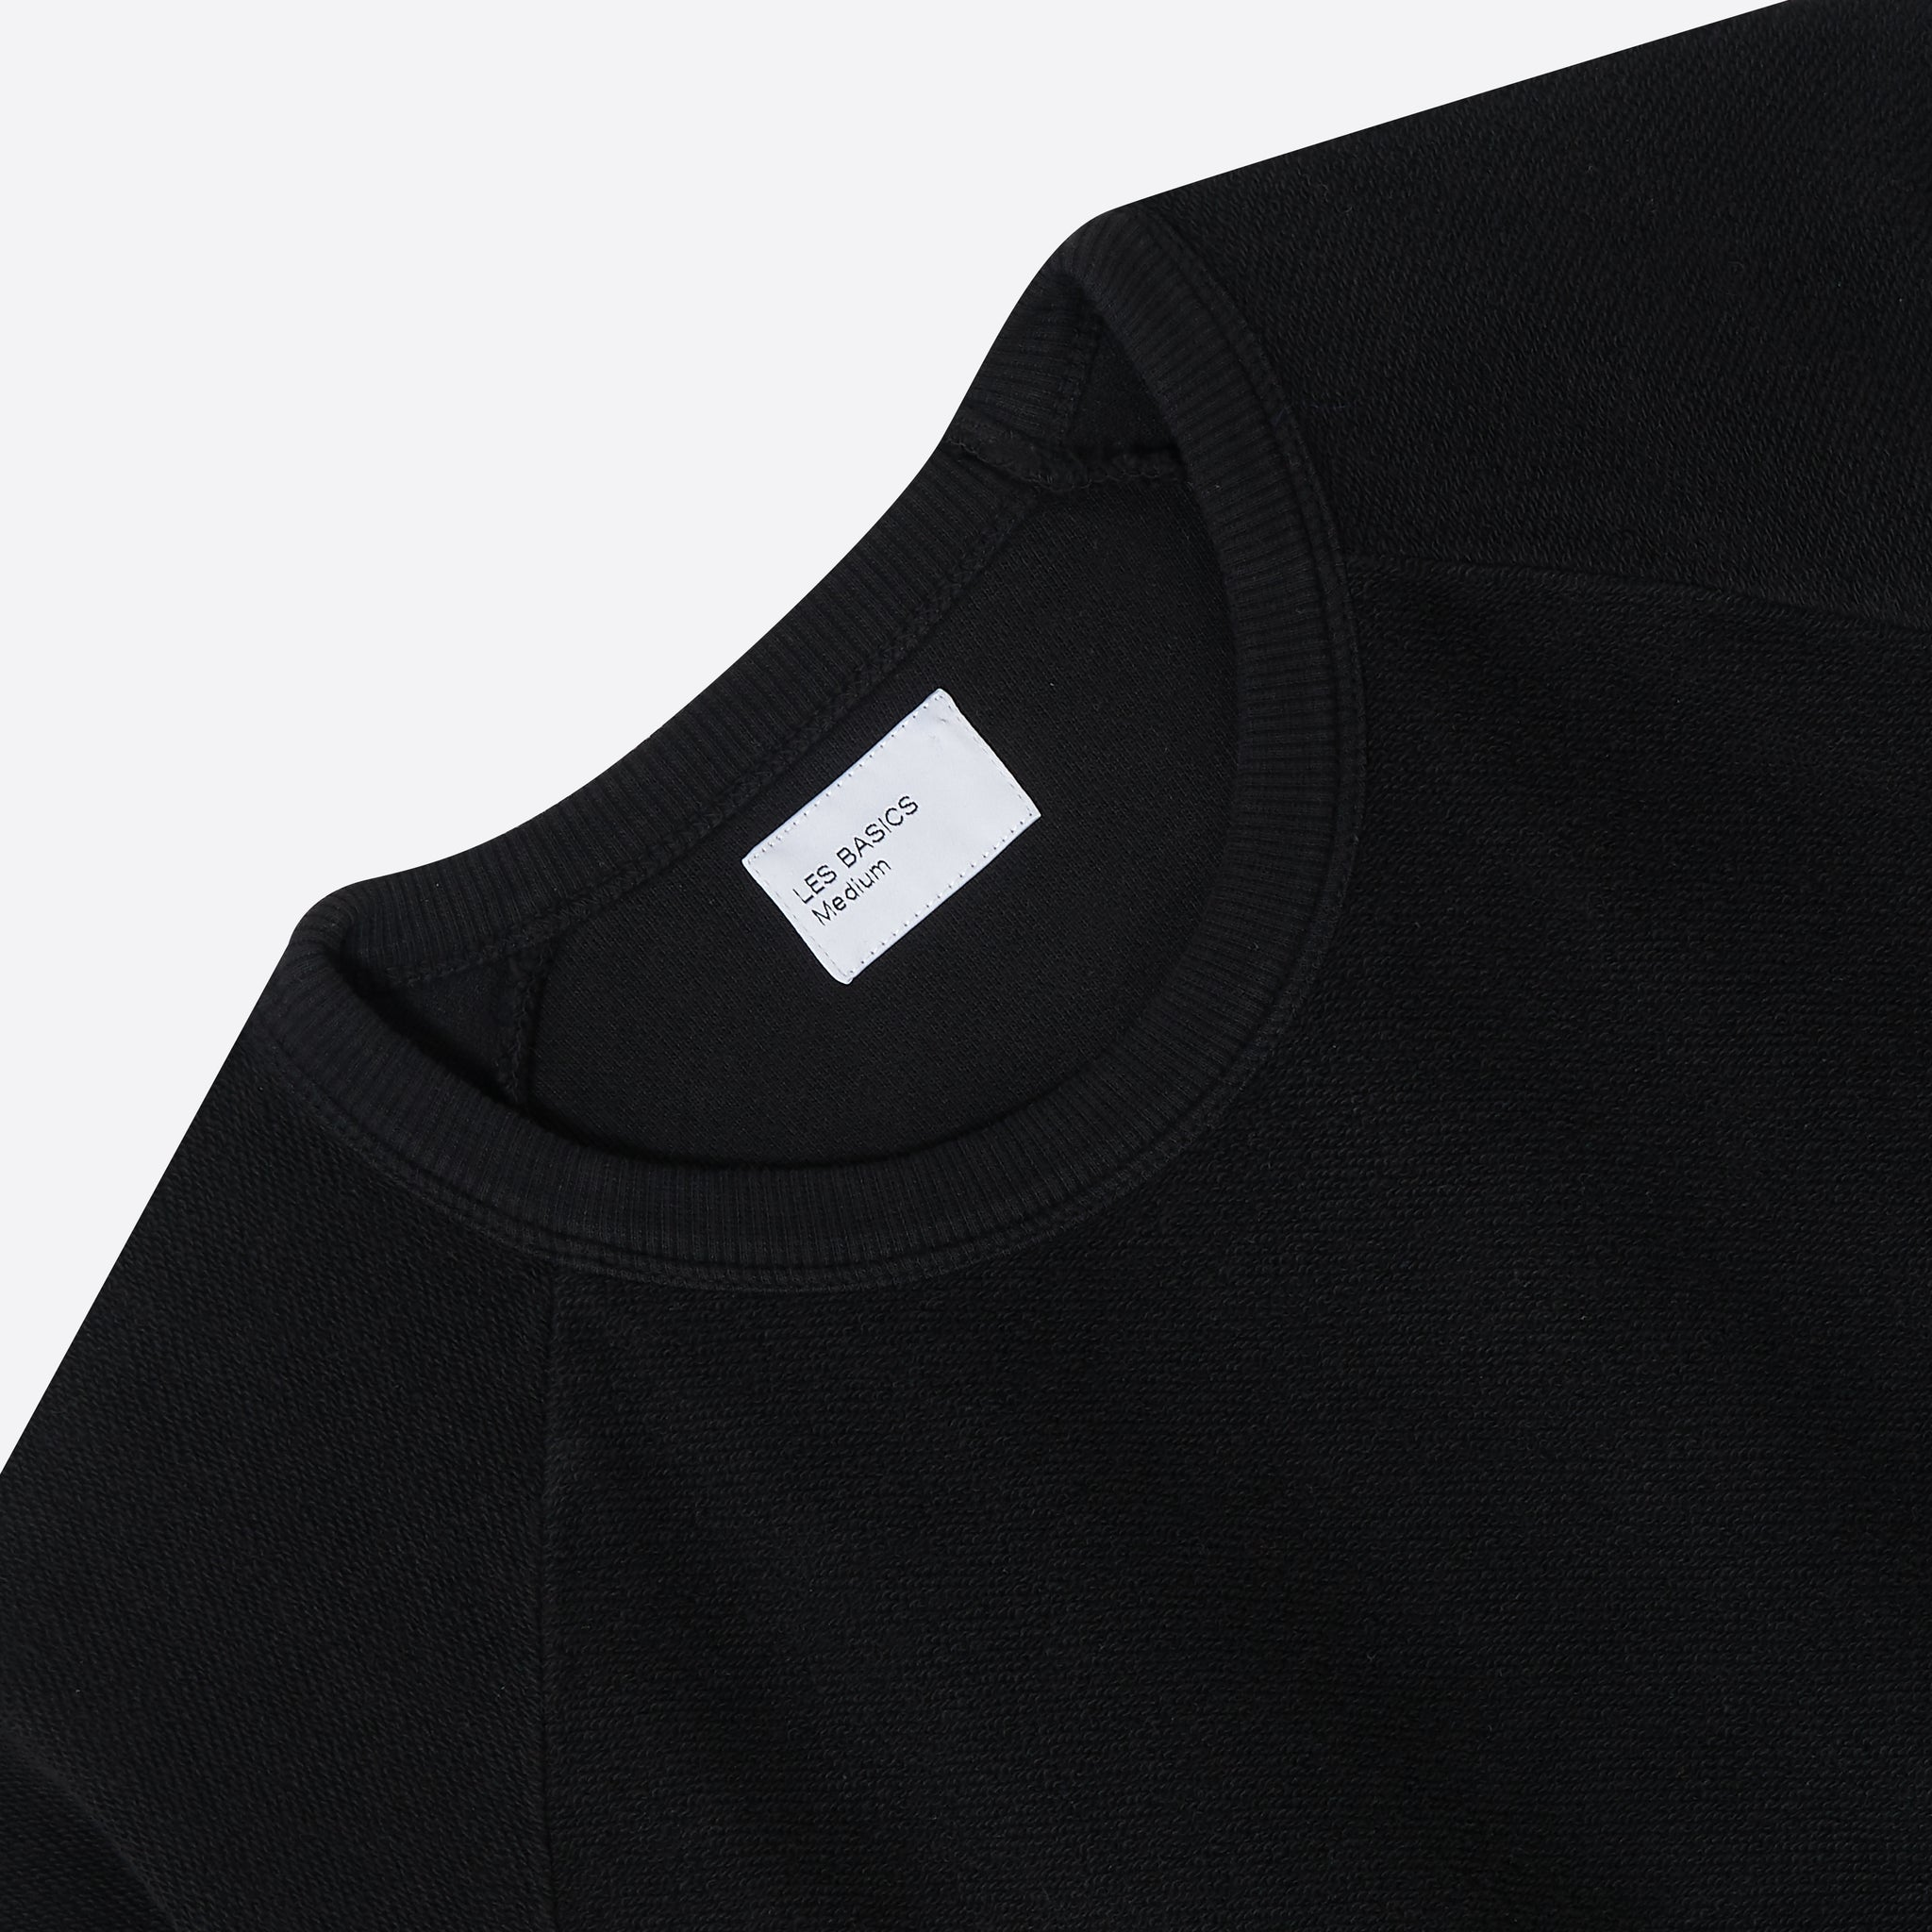 Les Basics Le Sweat Tee in Black